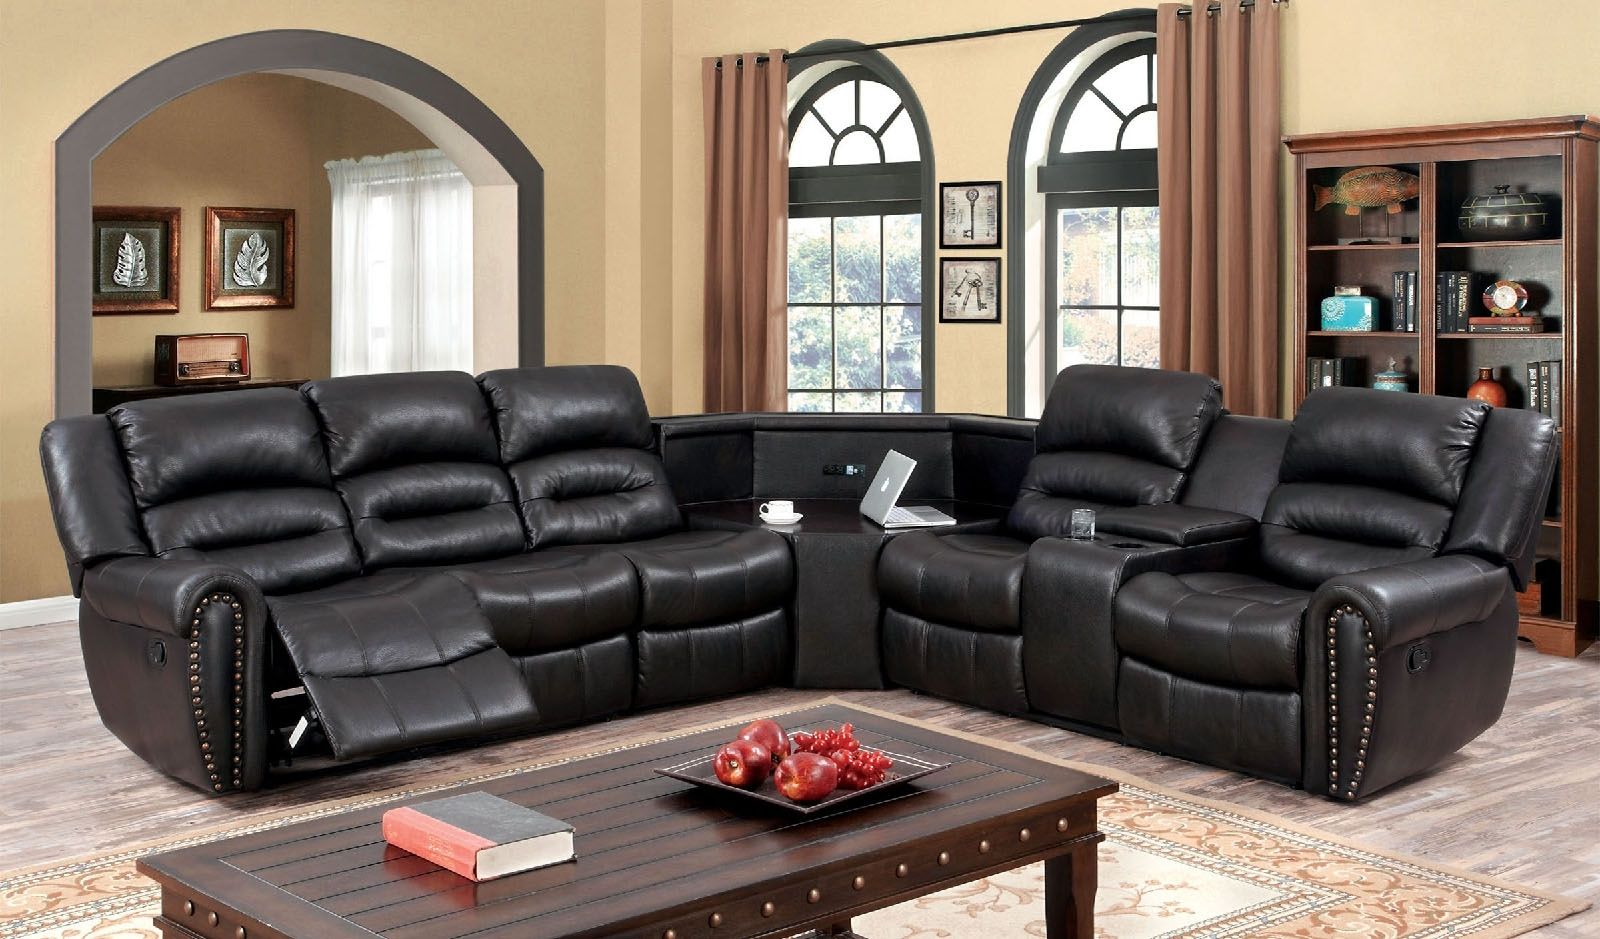 Sofa : Best Power Reclining Sectional Sofas Modern Reclining For Most Popular Sectional Sofas With Cup Holders (View 14 of 20)